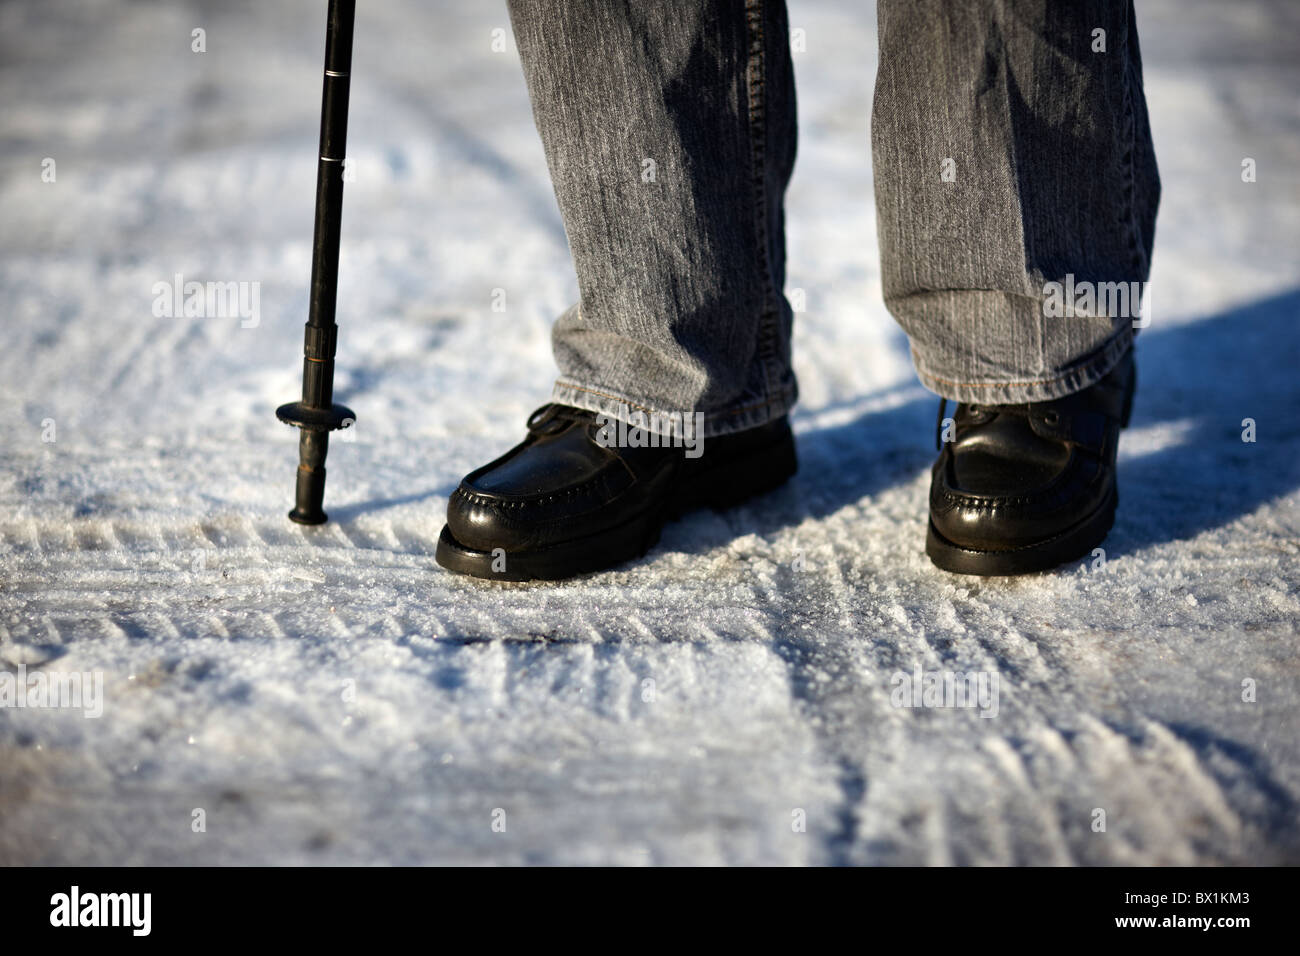 Older person walking on an icy pavement with stick - Stock Image